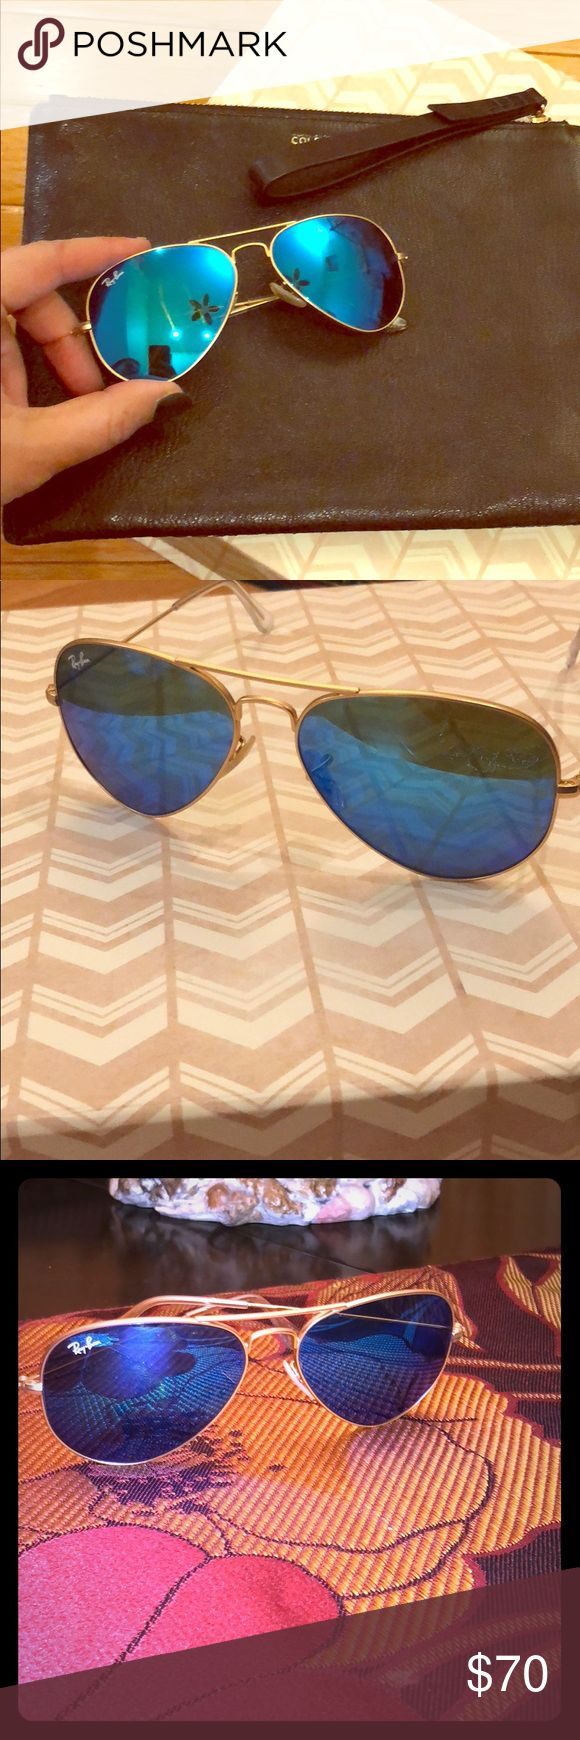 Ray ban blue flash mirror aviators (54mm) Ray ban mirrored aviators (54mm) in gold trim.  The frame is gold and the lens color is 'blue flash'   Comes with its case. Authentic. Ray-Ban Accessories Glasses